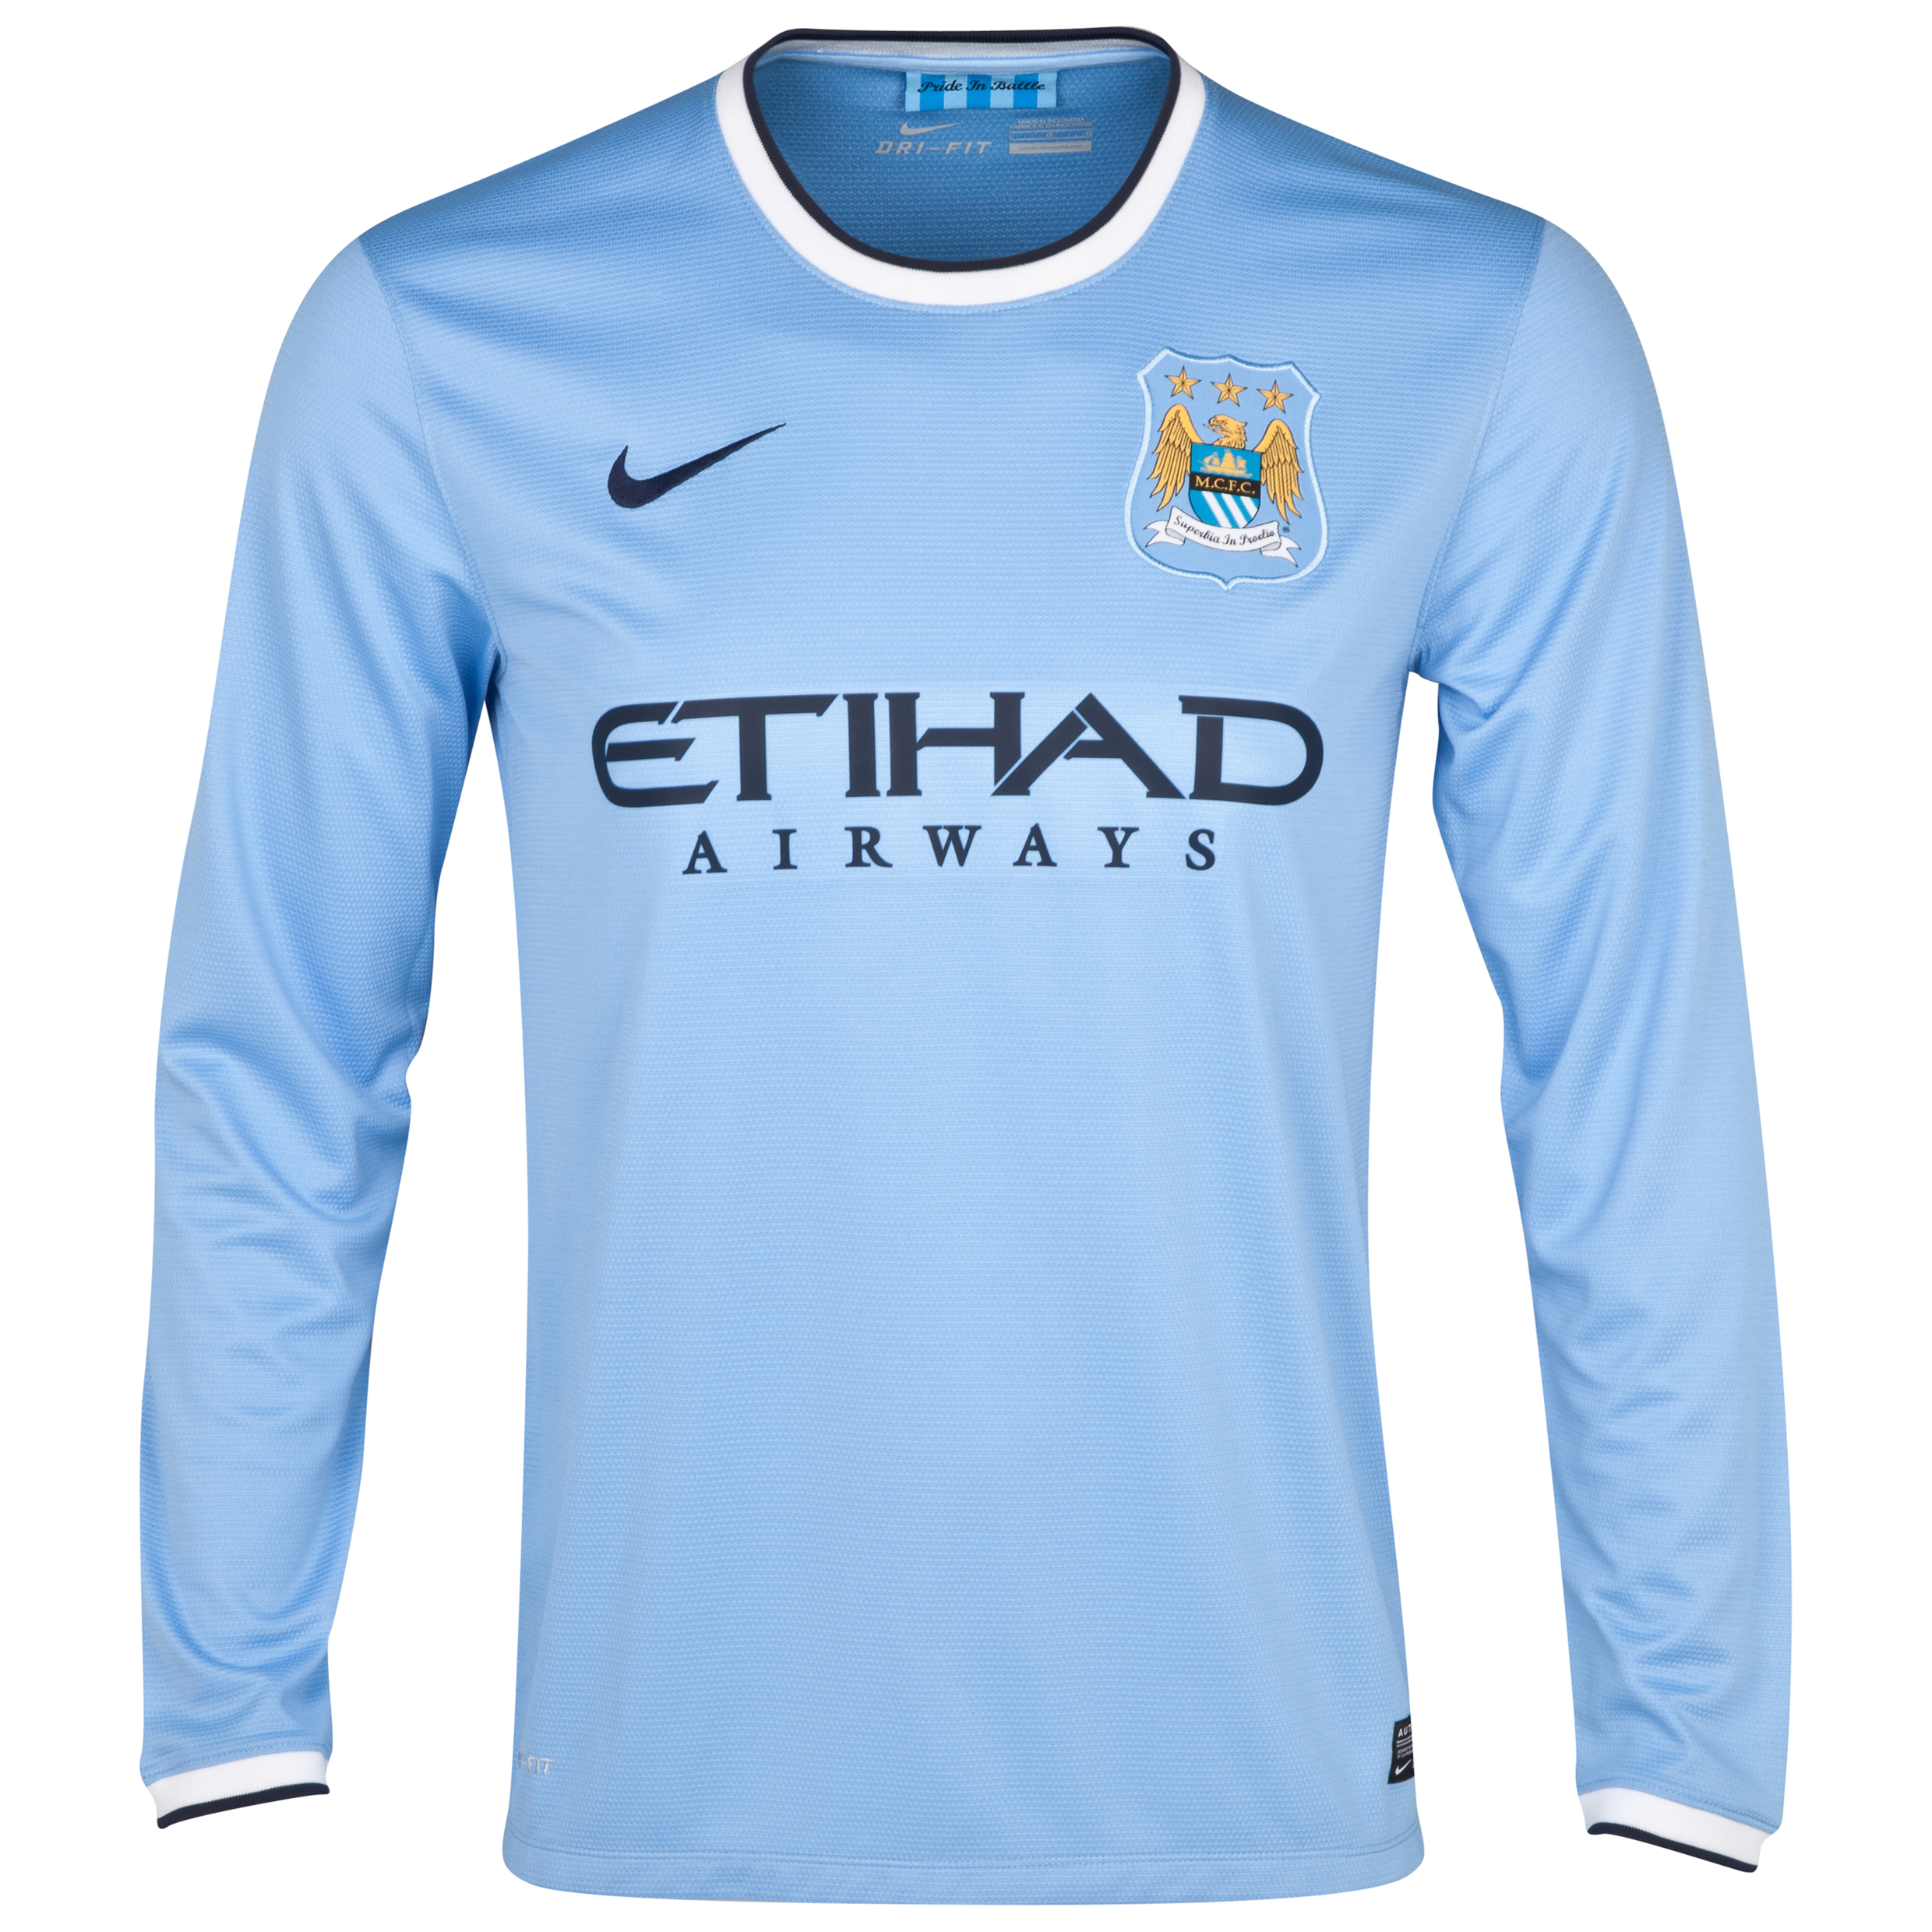 Manchester City Home Shirt 2013/14 - Long Sleeved